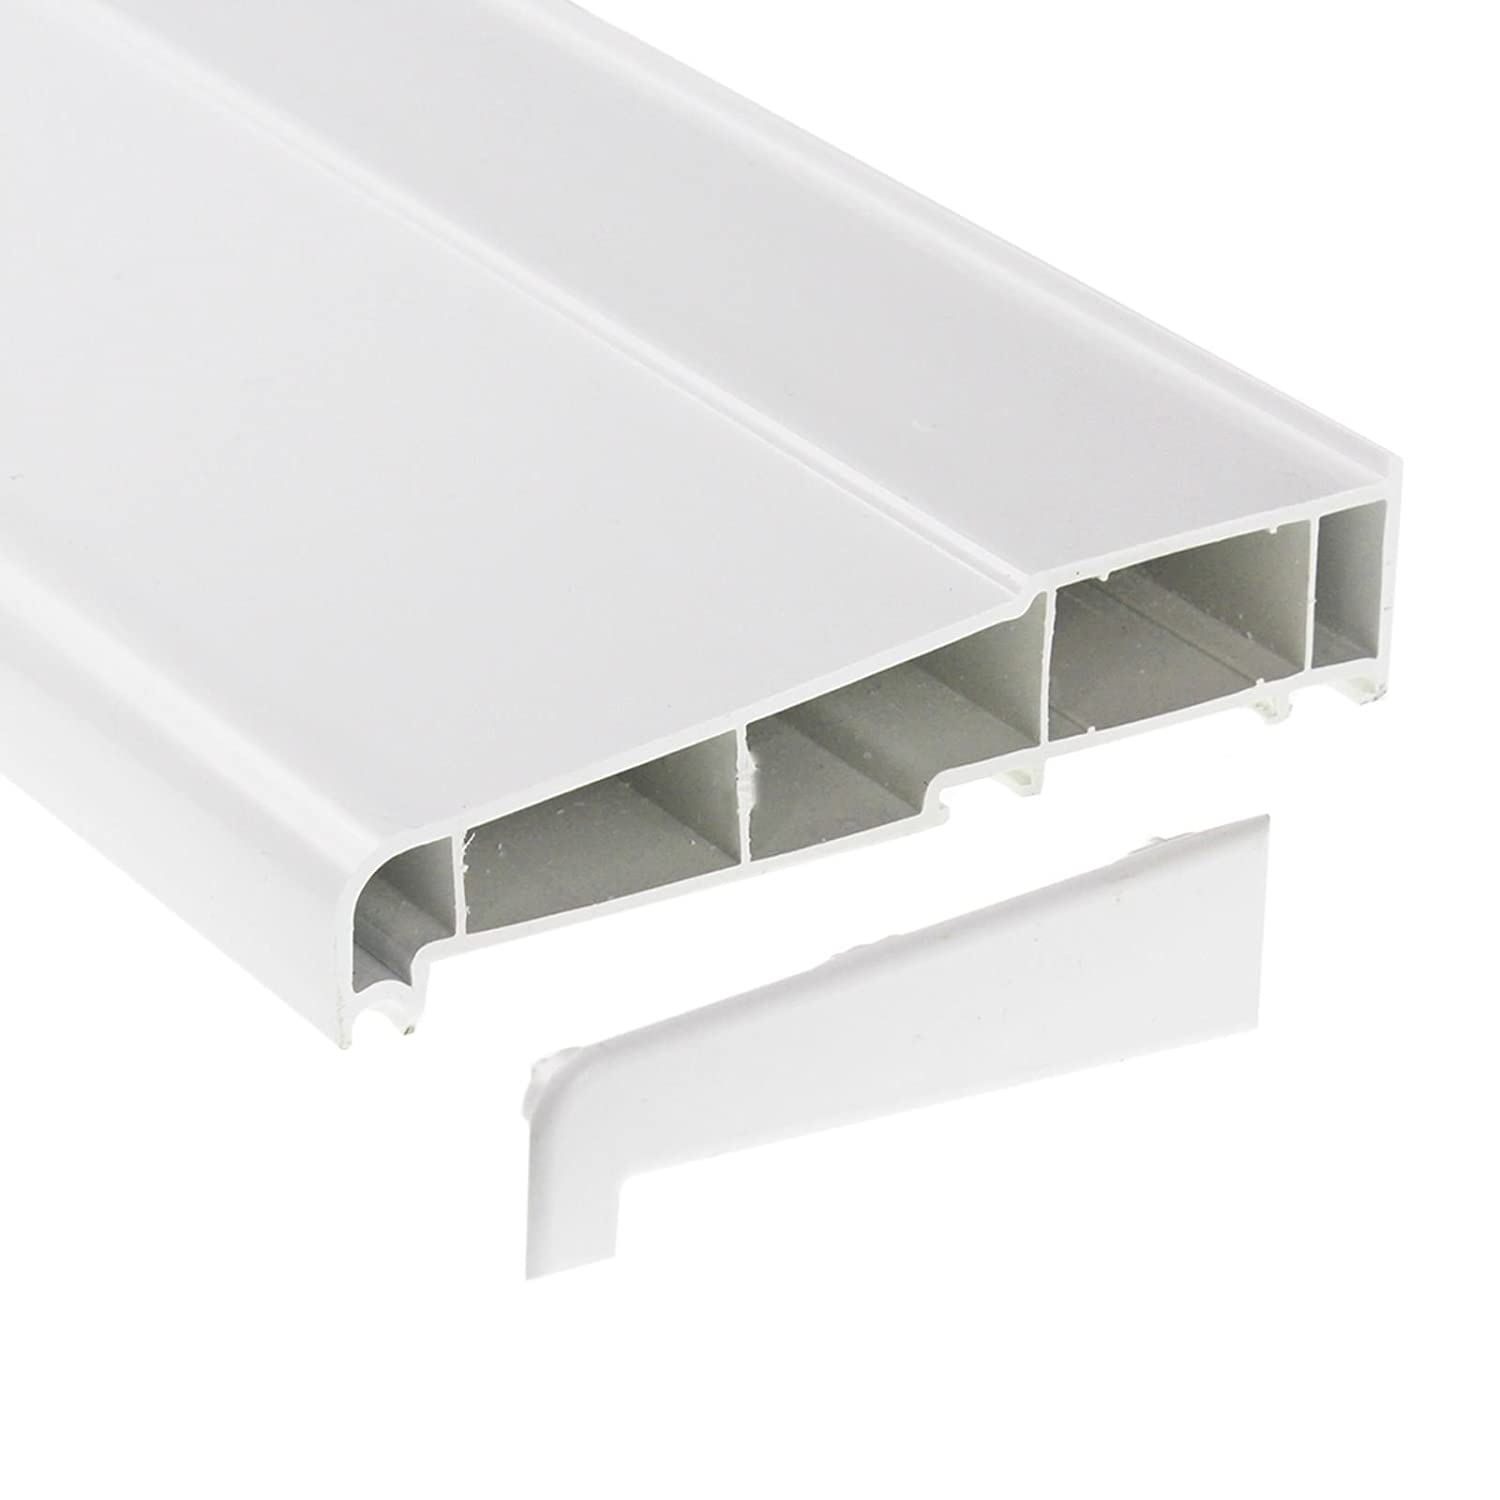 150mm x 1m White UPVC Plastic External Window Sill with 2 End Caps Eurocell